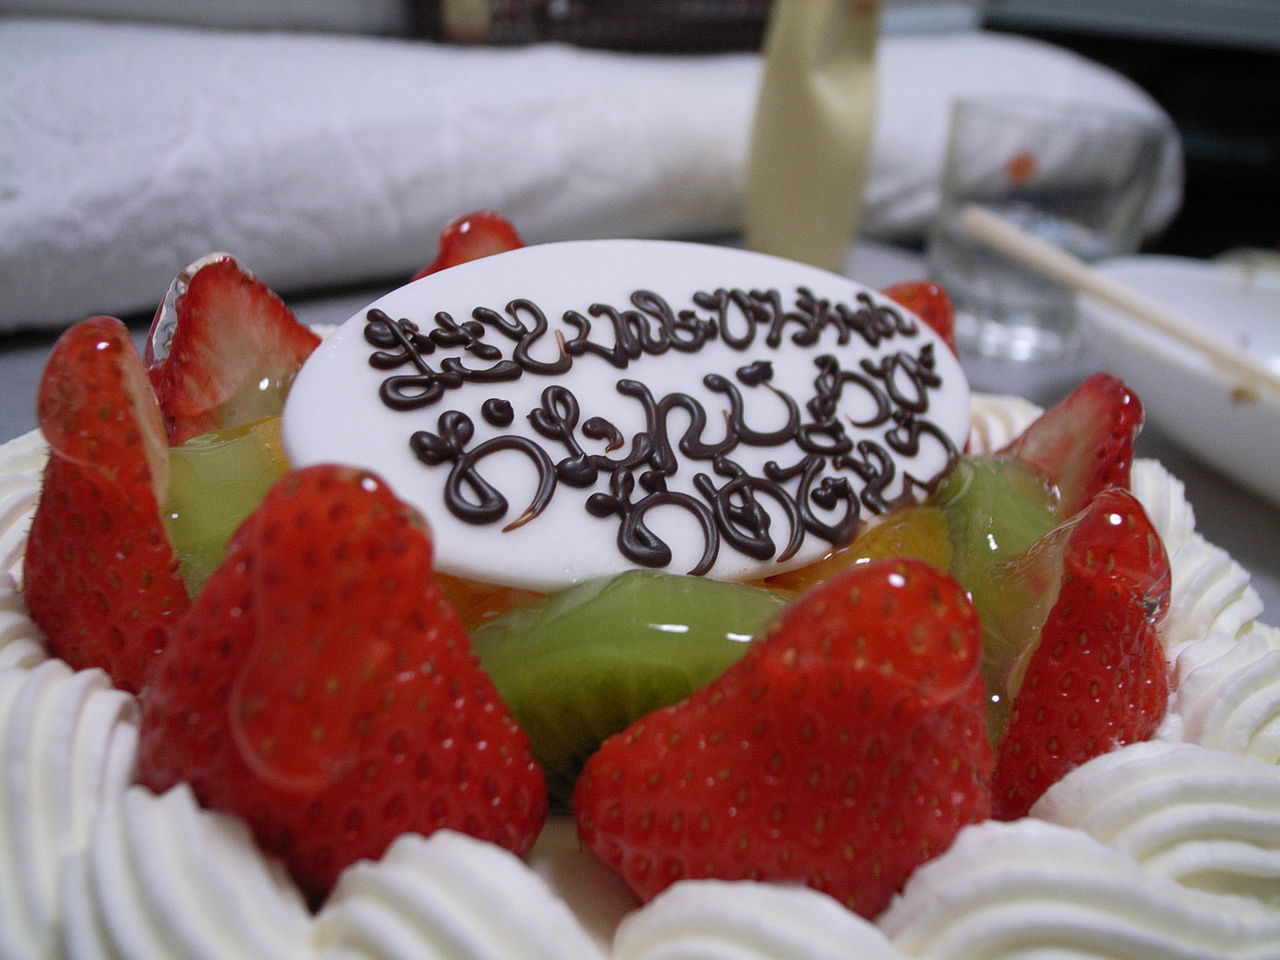 File:Japanese Birthday Cake 01.jpg - Wikimedia Commons